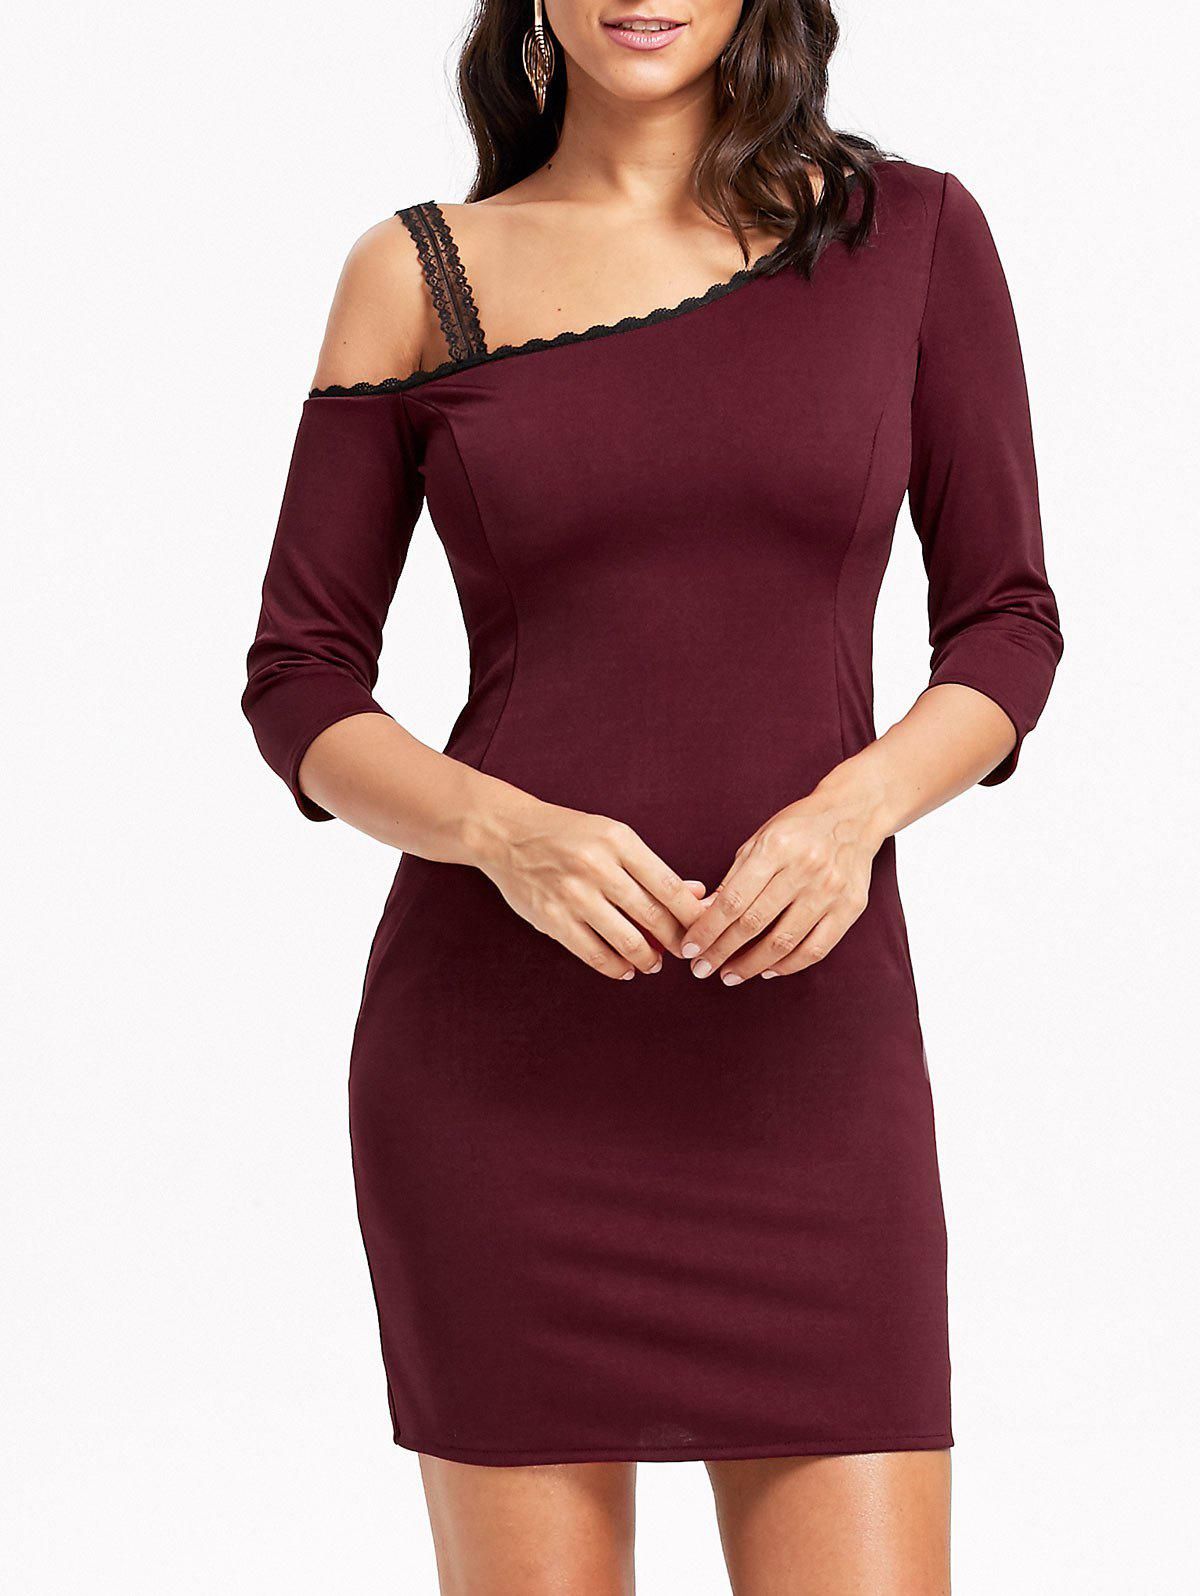 Skew Neck Lace Trim Bodycon Mini Dress - WINE RED XL